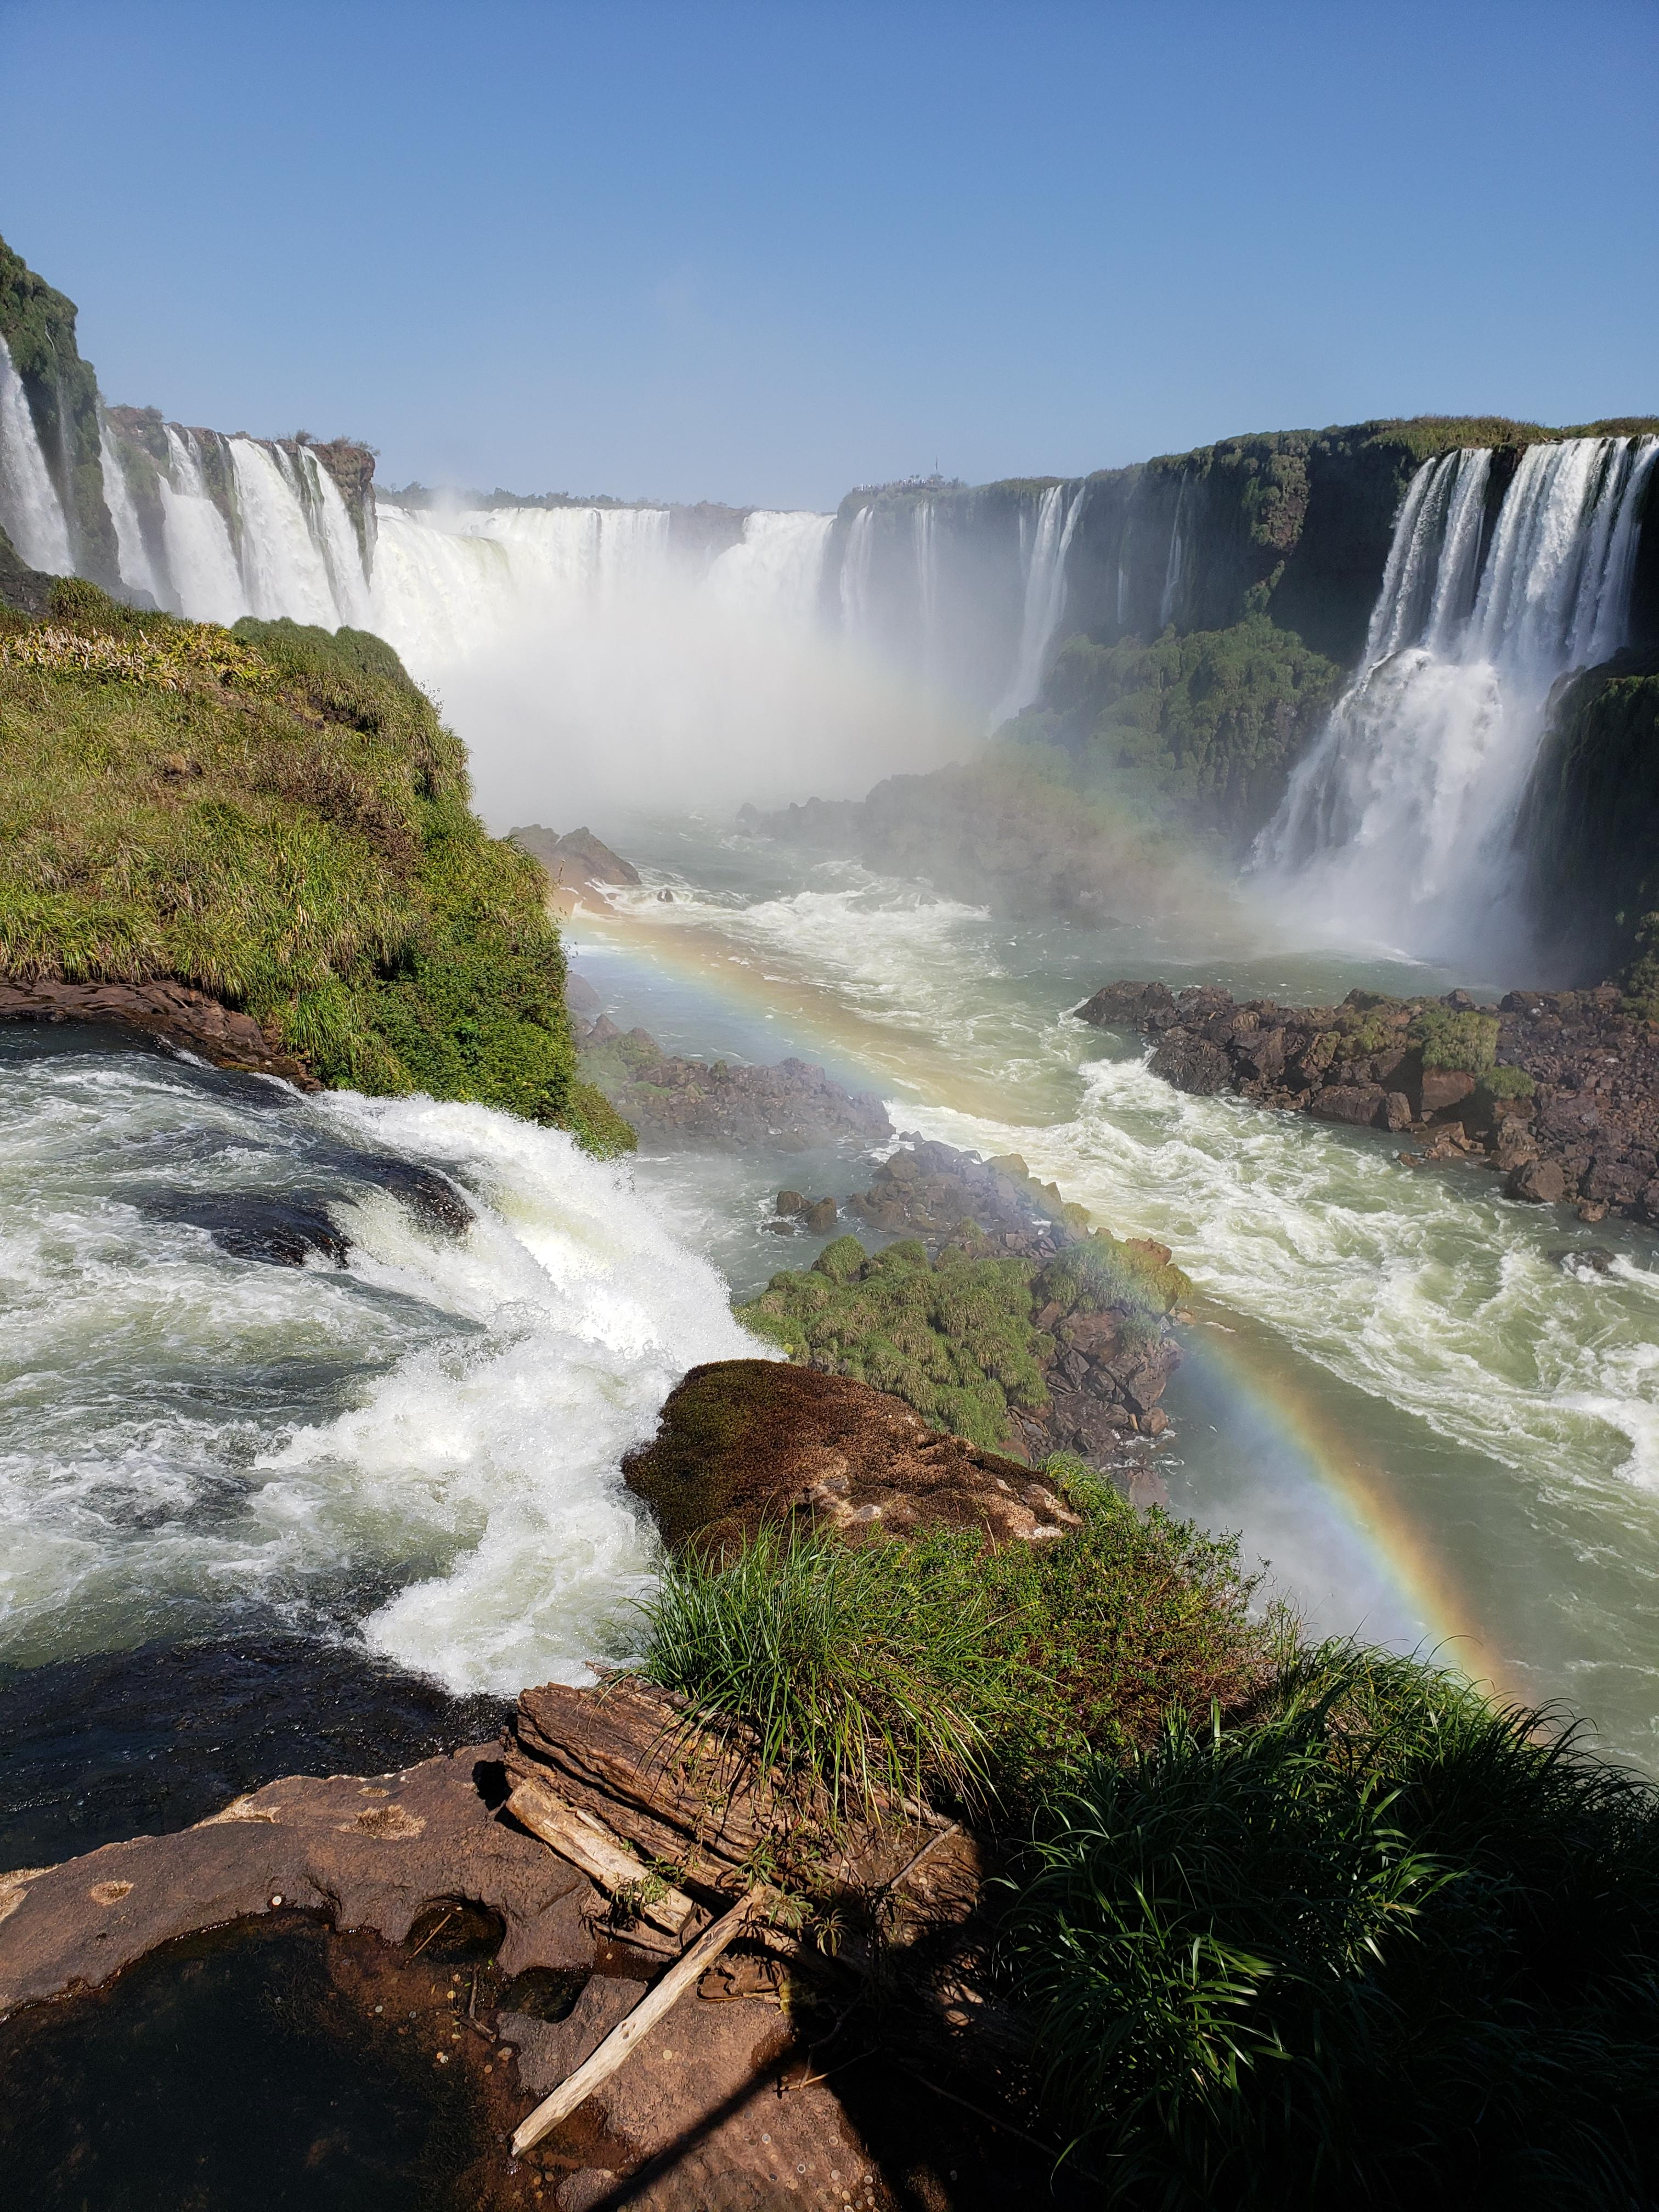 Iguasso Falls, Brazil. The water tumbles over cliffs, forming rainbows in the sunlight.